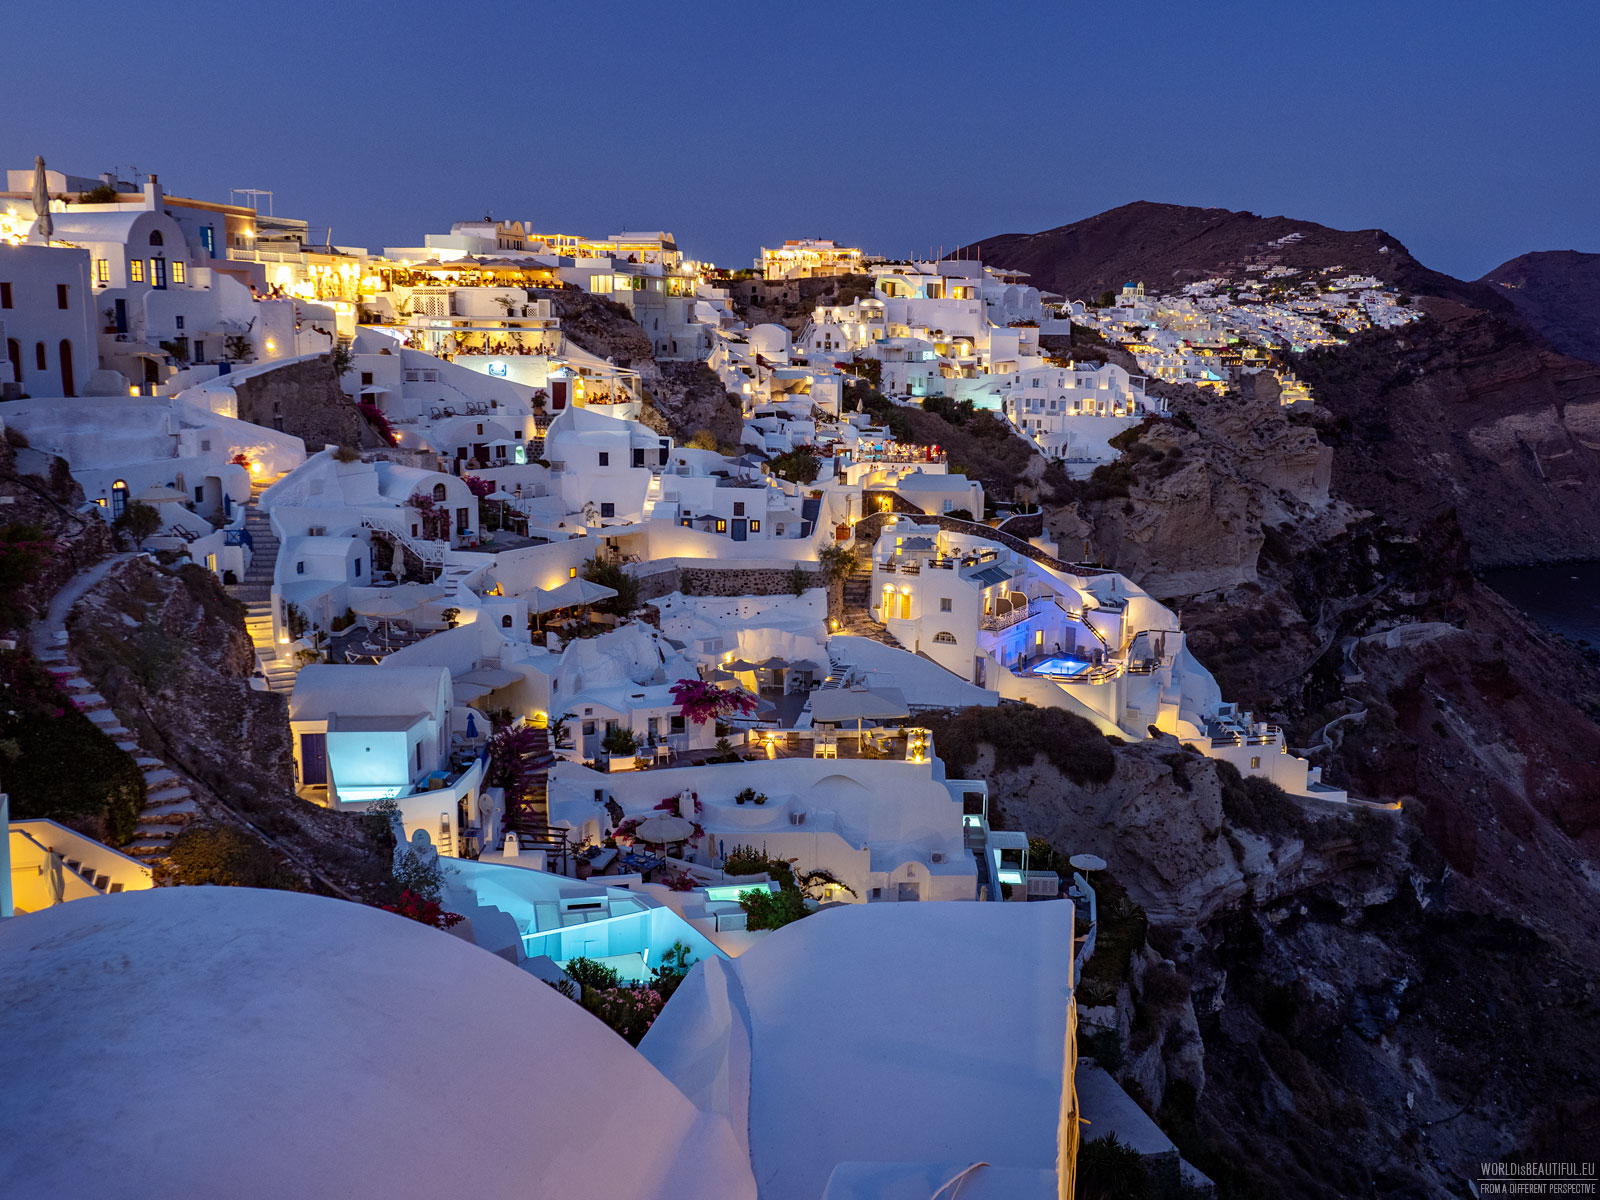 Evening in Oia